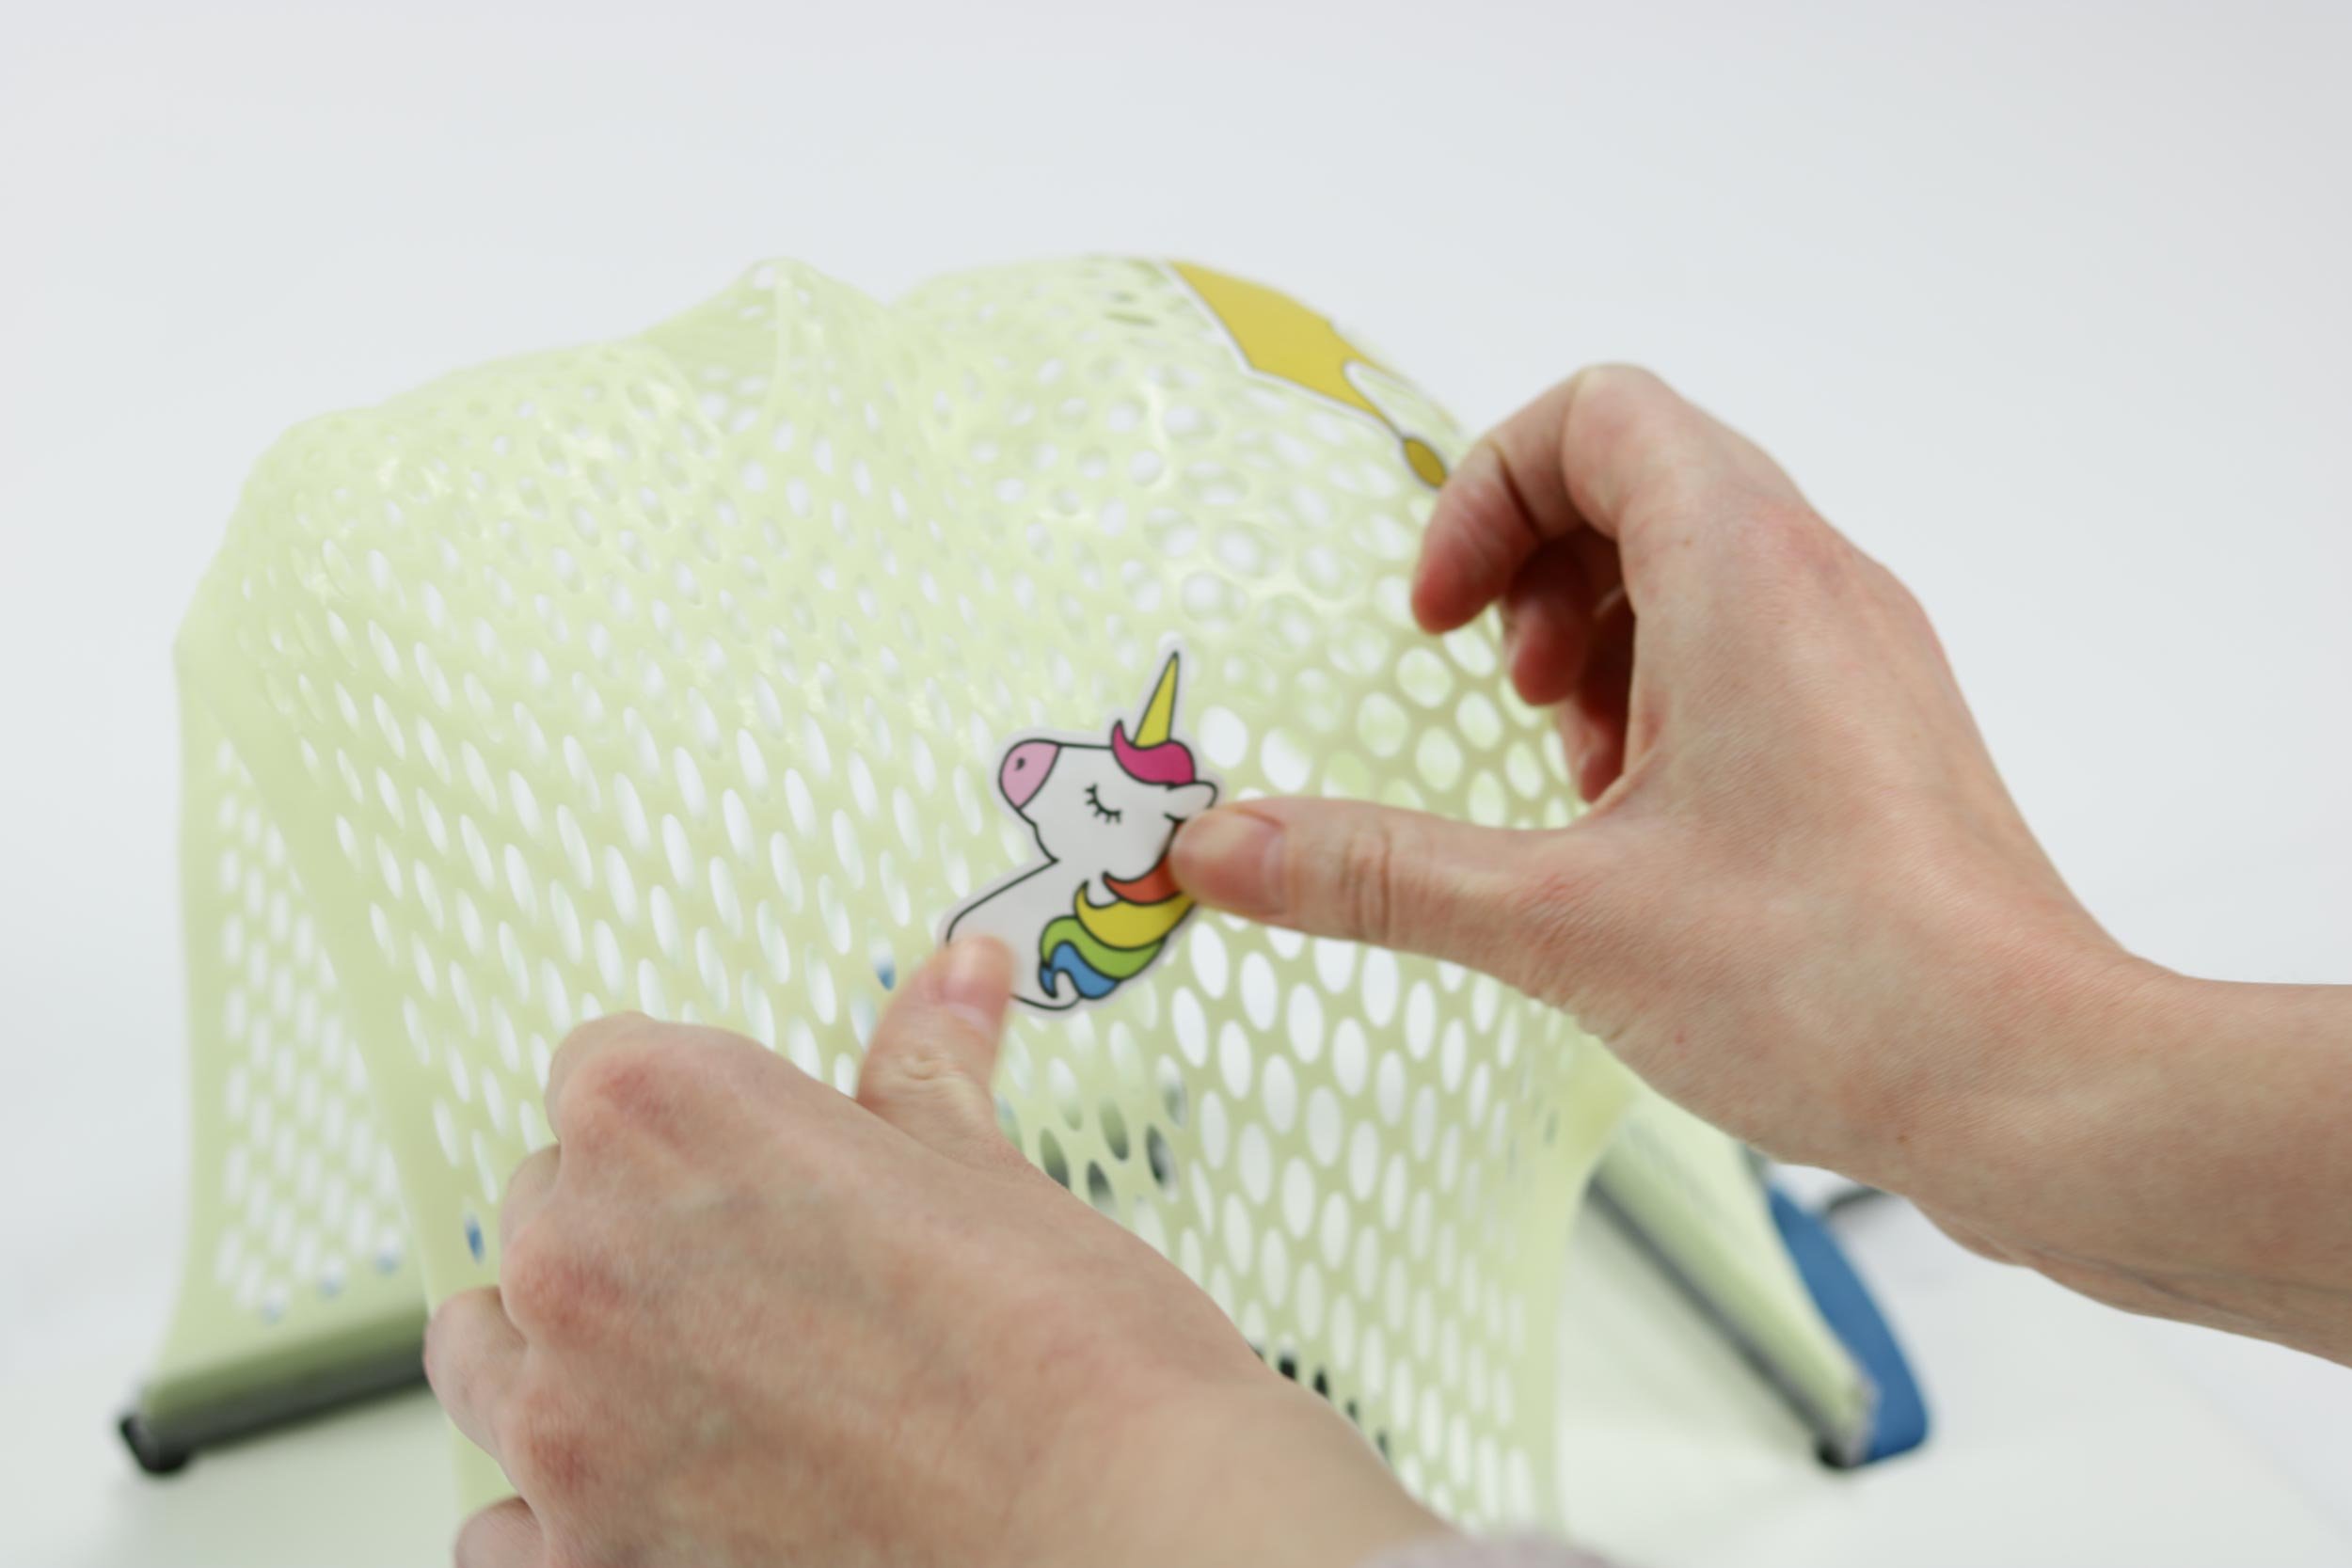 Sticking a unicorn sticker on a thermoplastic mask